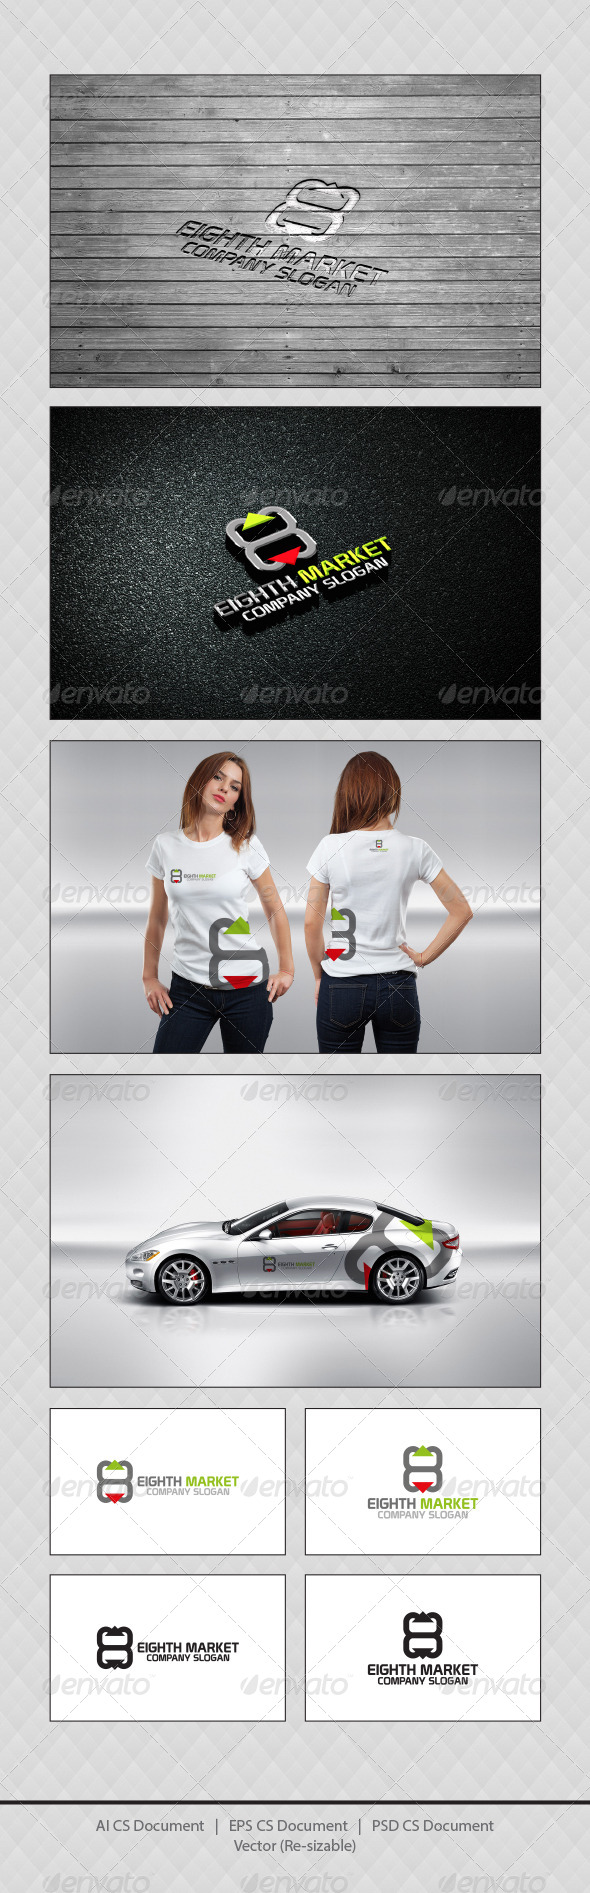 GraphicRiver Eighth Market Logo Templates 4261755